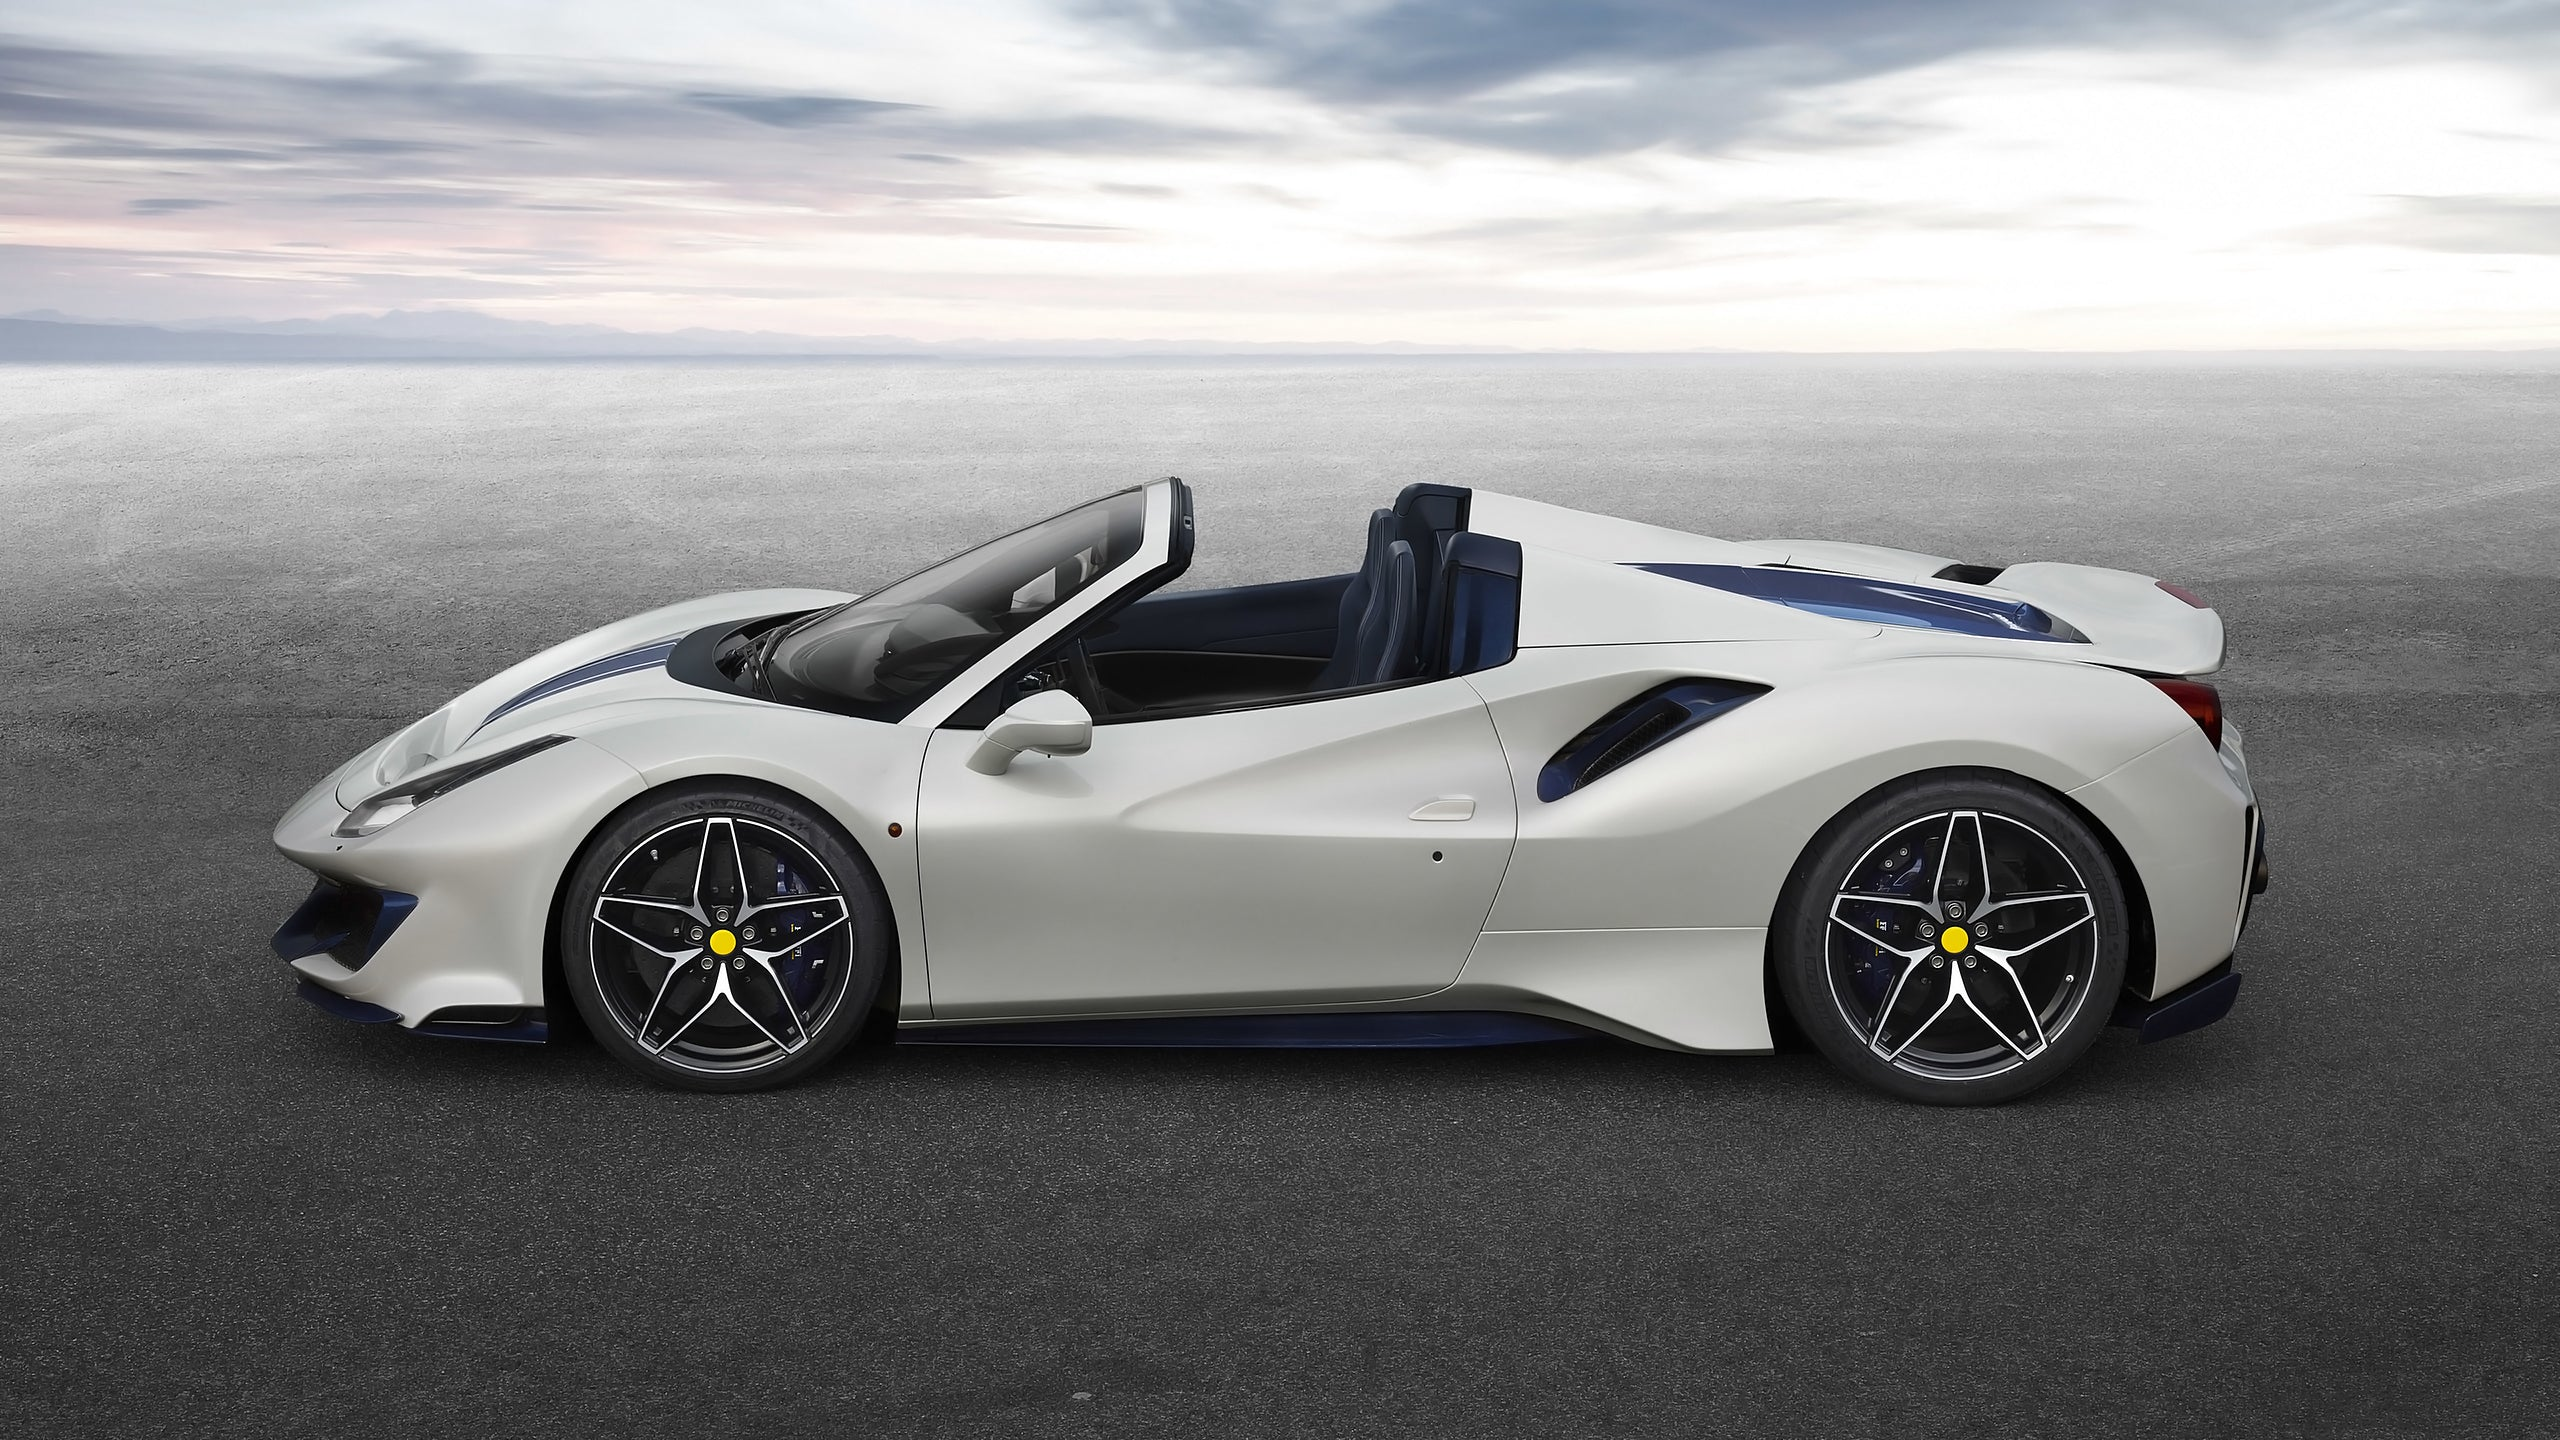 FP 226 - Aftermarket Custom Made Fully Forged Wheels Set To Fit Most Ferrari